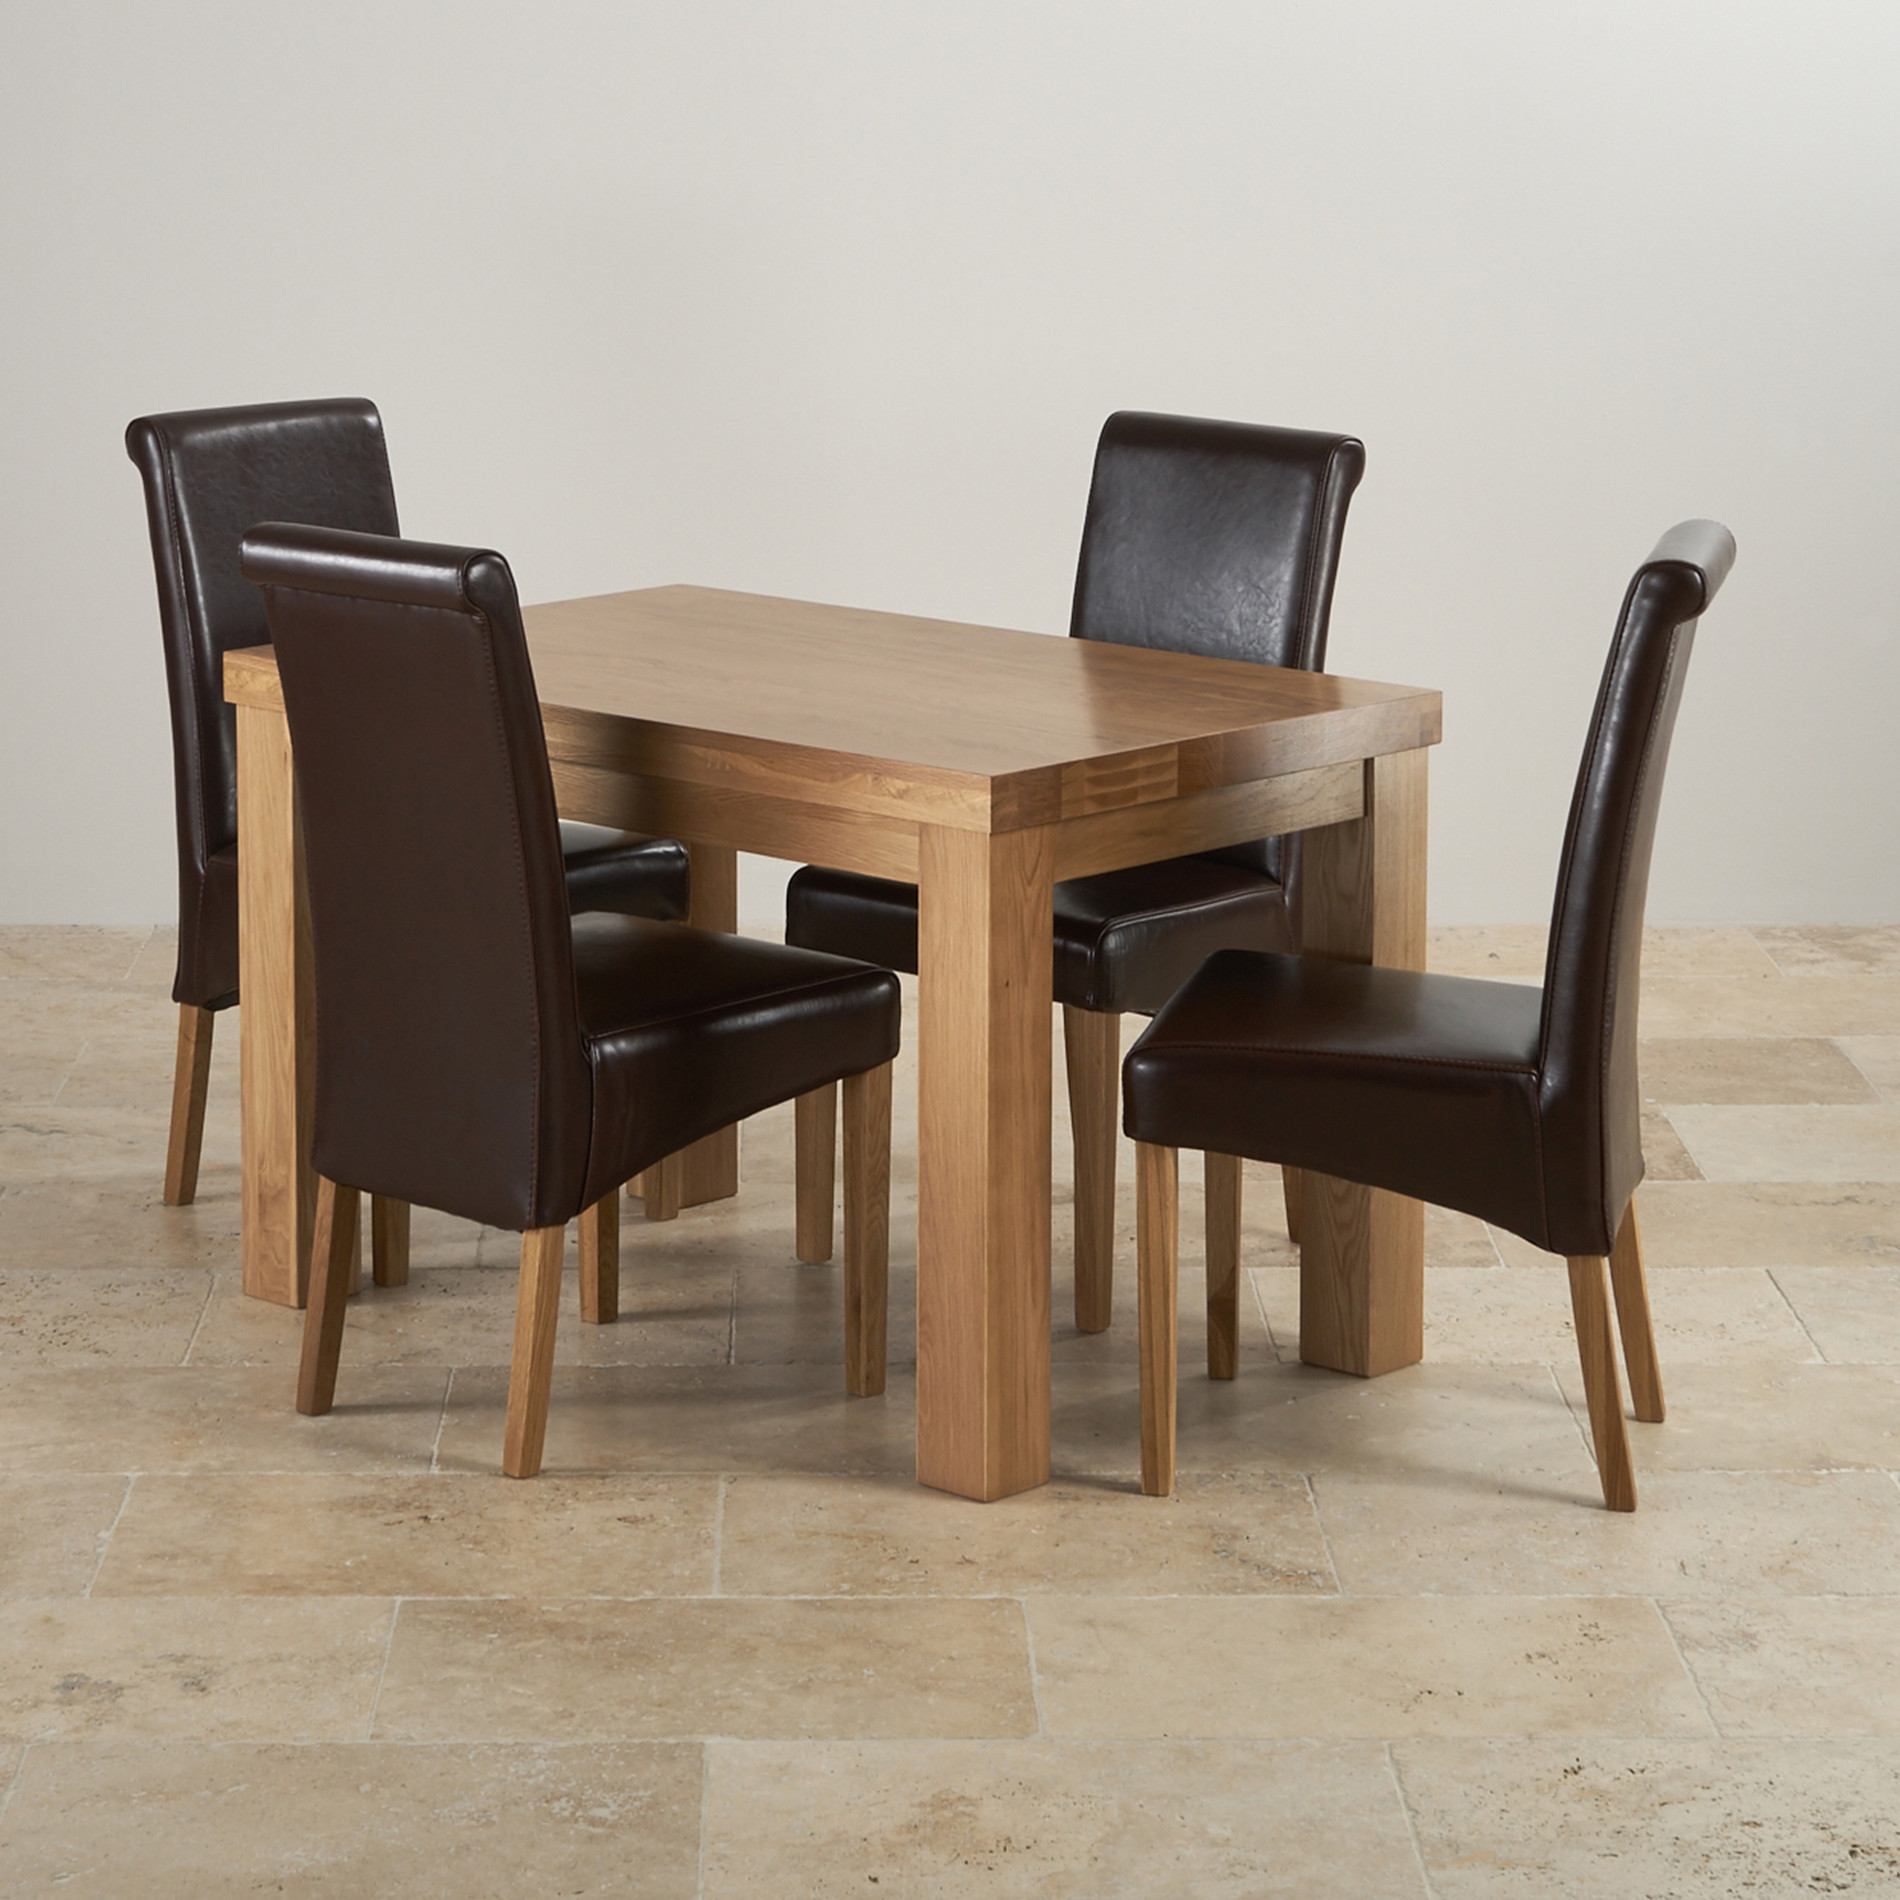 Oak Wood Table And Chairs: Chunky Solid Oak Dining Set In Oak: 4ft Table + 4 Chairs